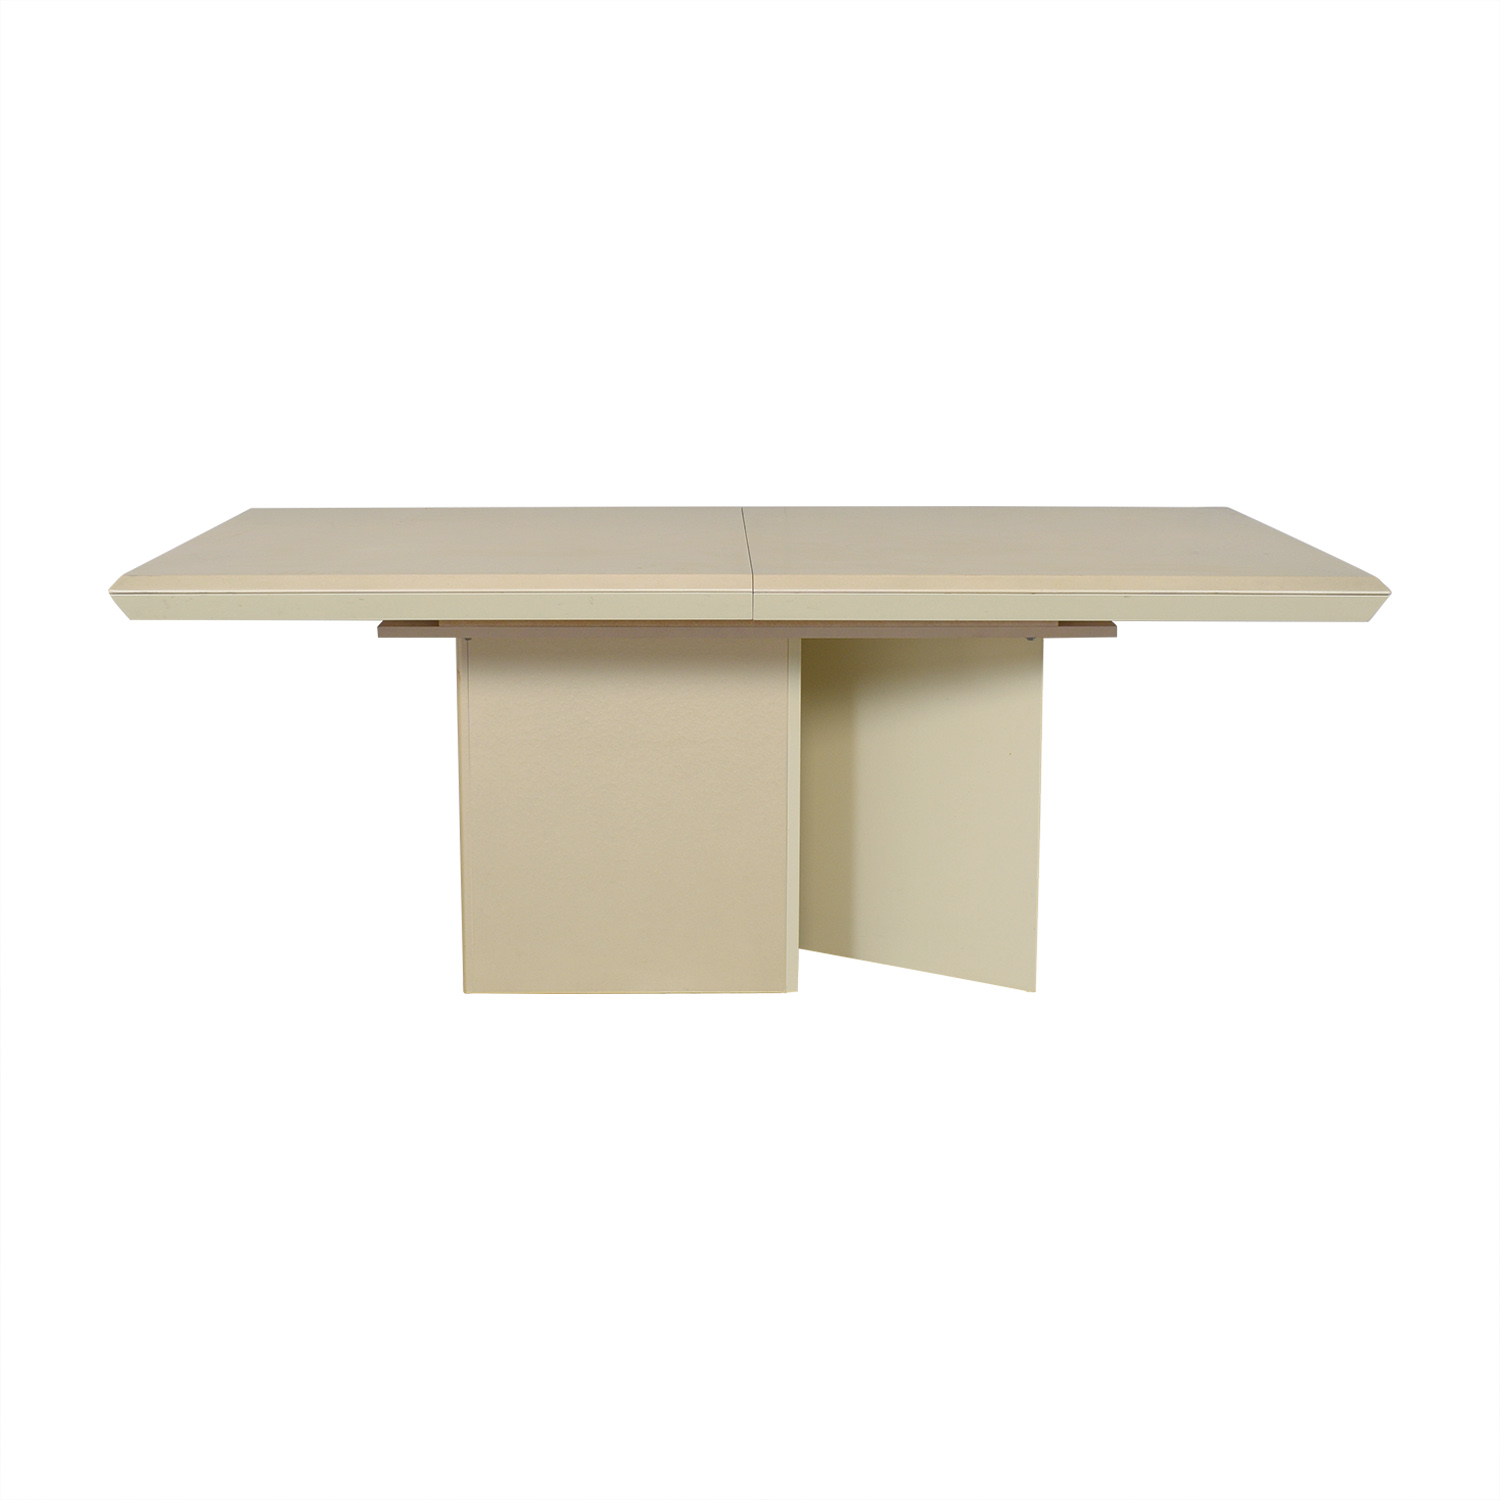 Carrier Furniture Carrier Furniture Extendable Dining Table for sale